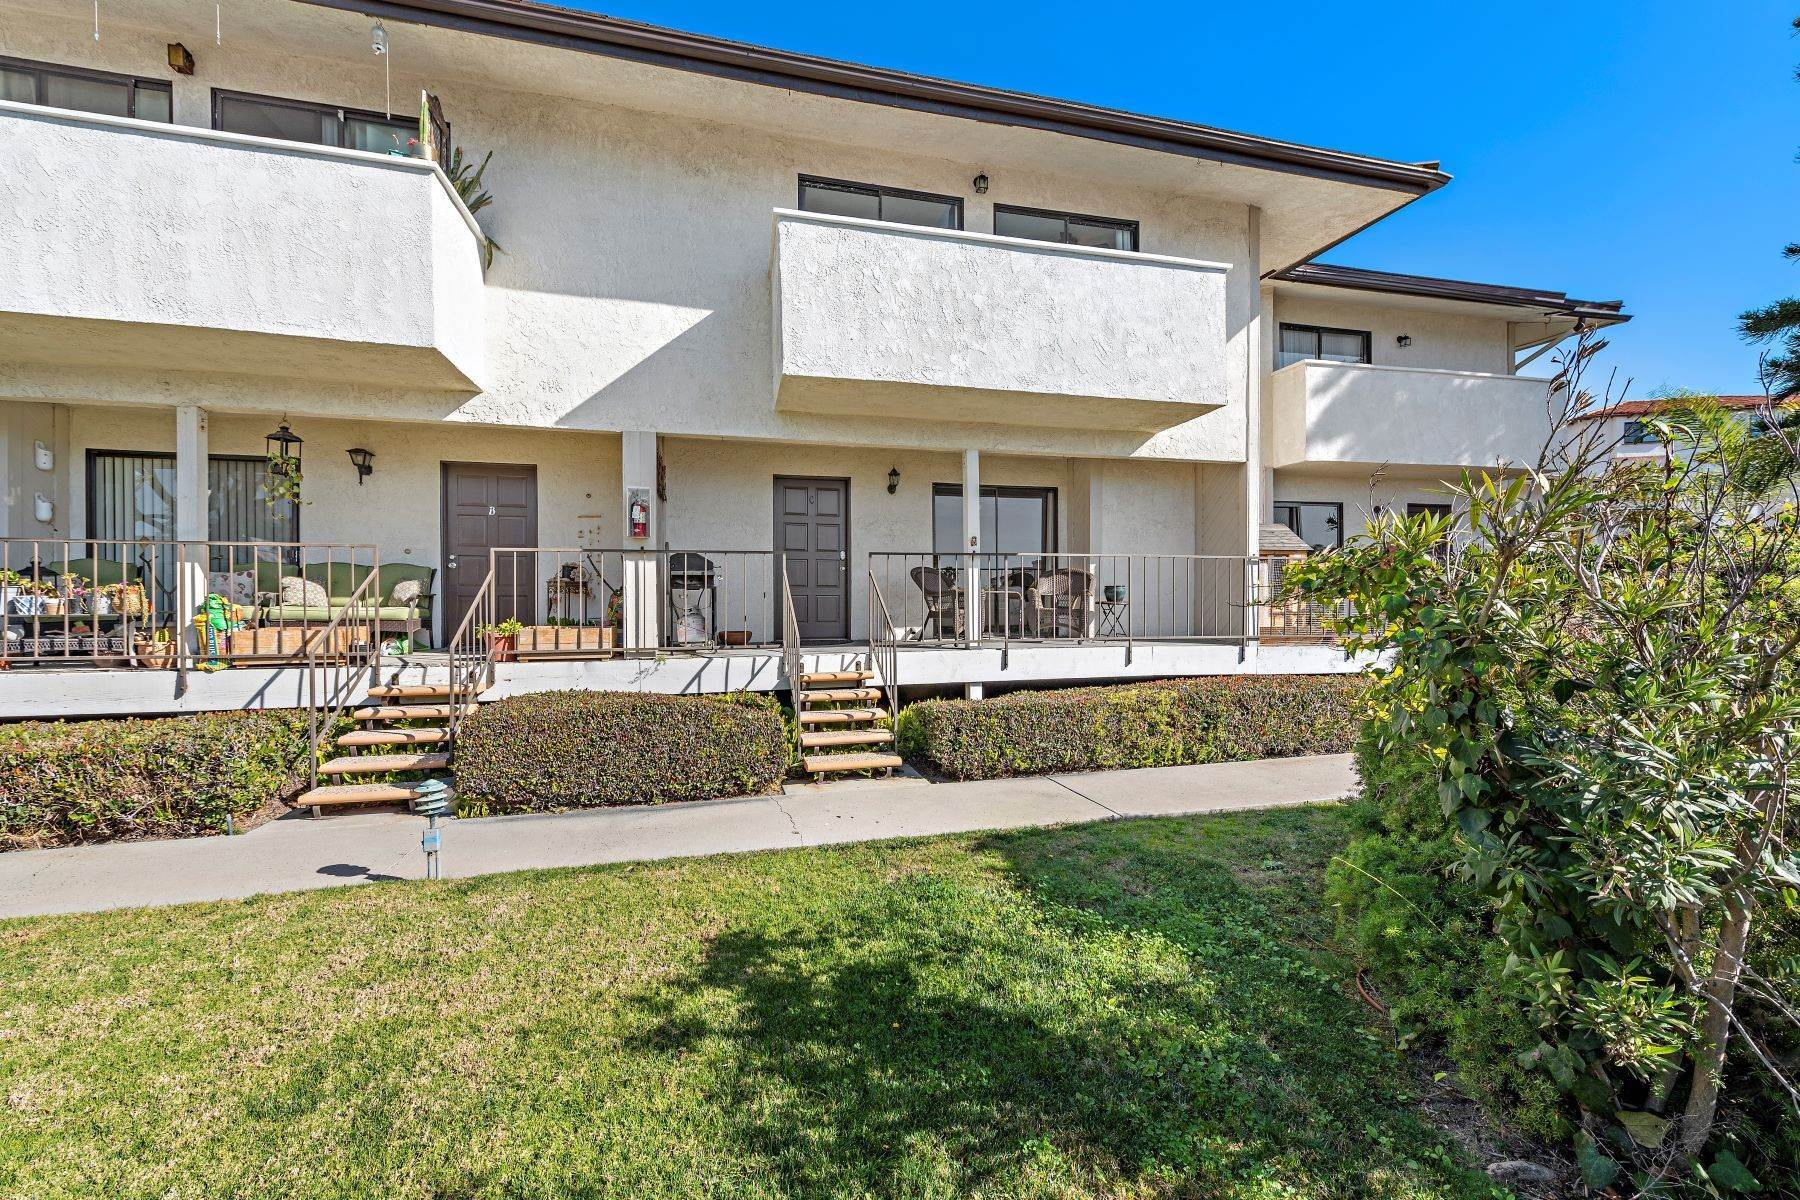 31. Condominiums for Sale at 321 Acebo Lane Unit #C, San Clemente, CA 92672 321 Acebo Lane, Unit #C San Clemente, California 92672 United States